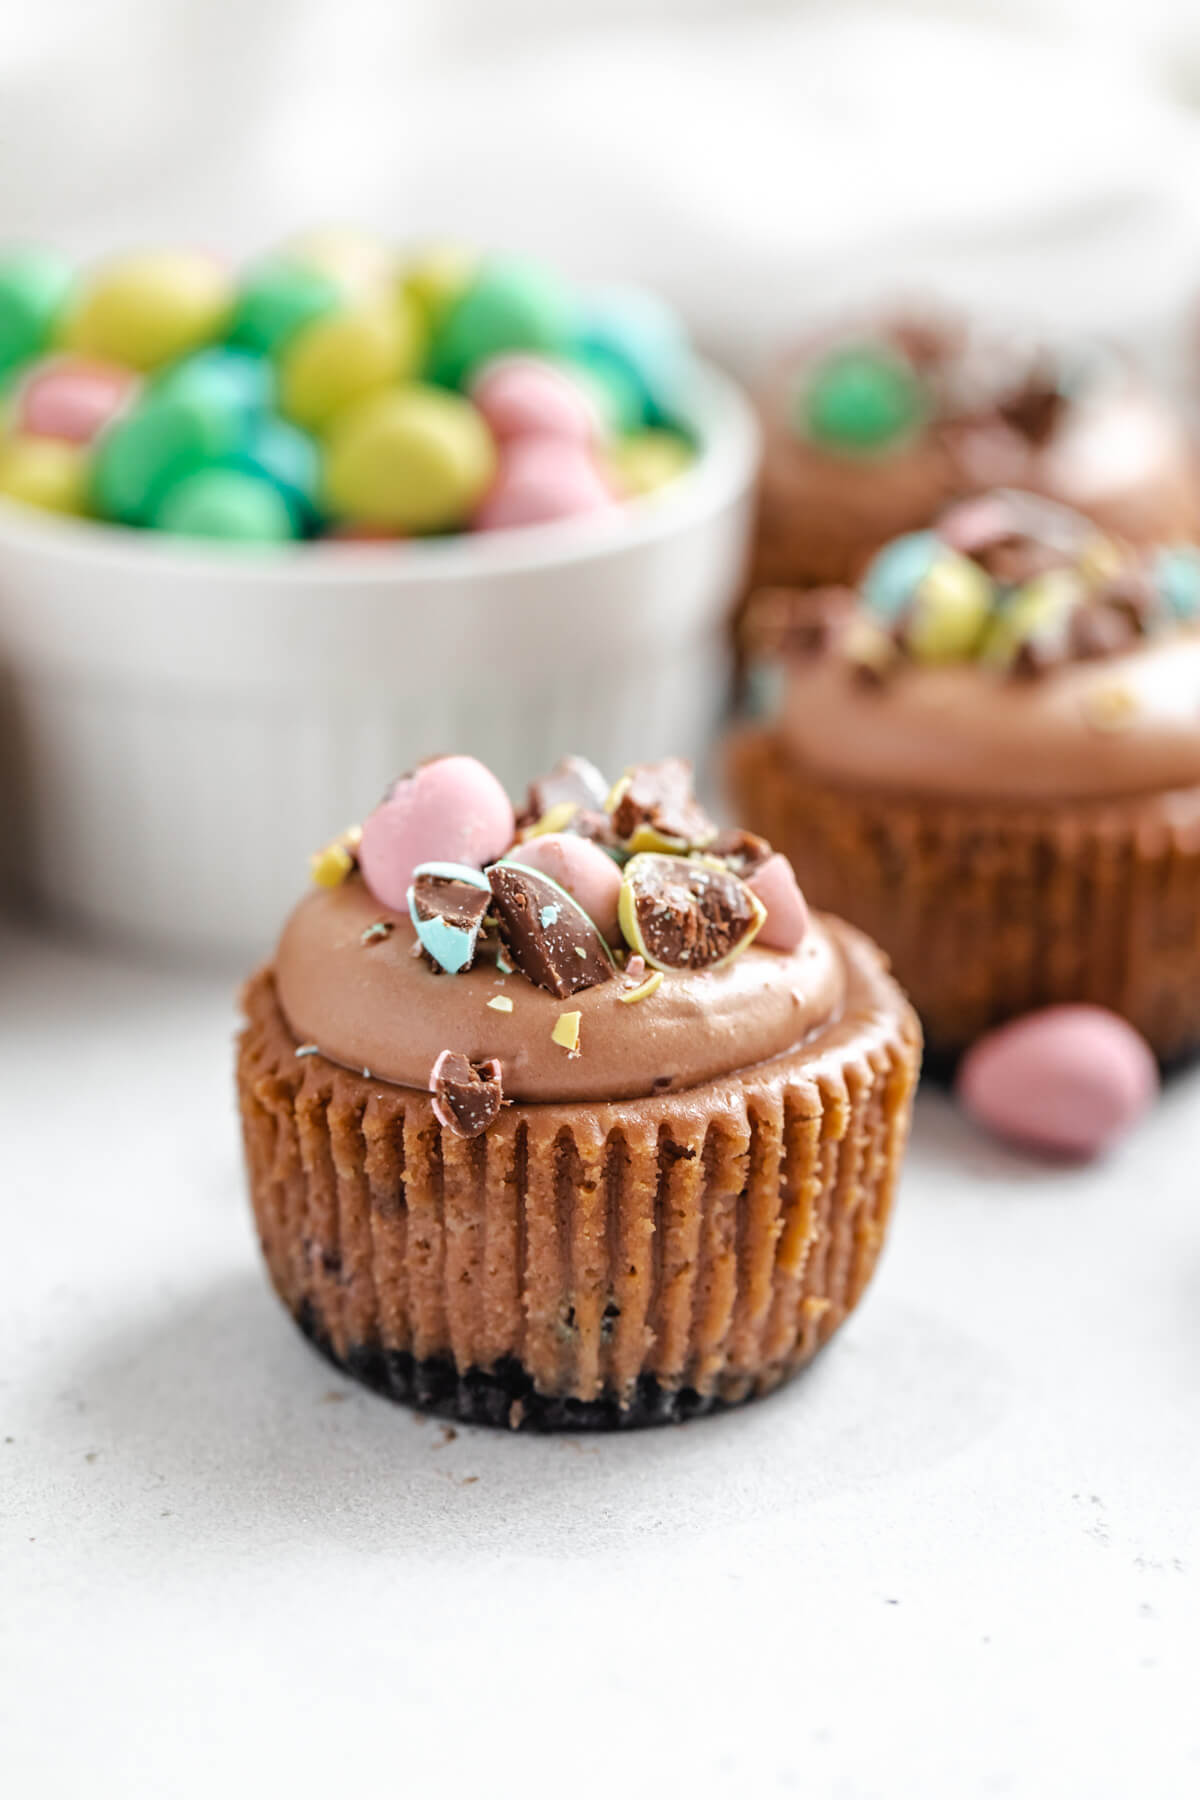 close up of cheesecake cupcake with chocolate Easter eggs in a ramekin